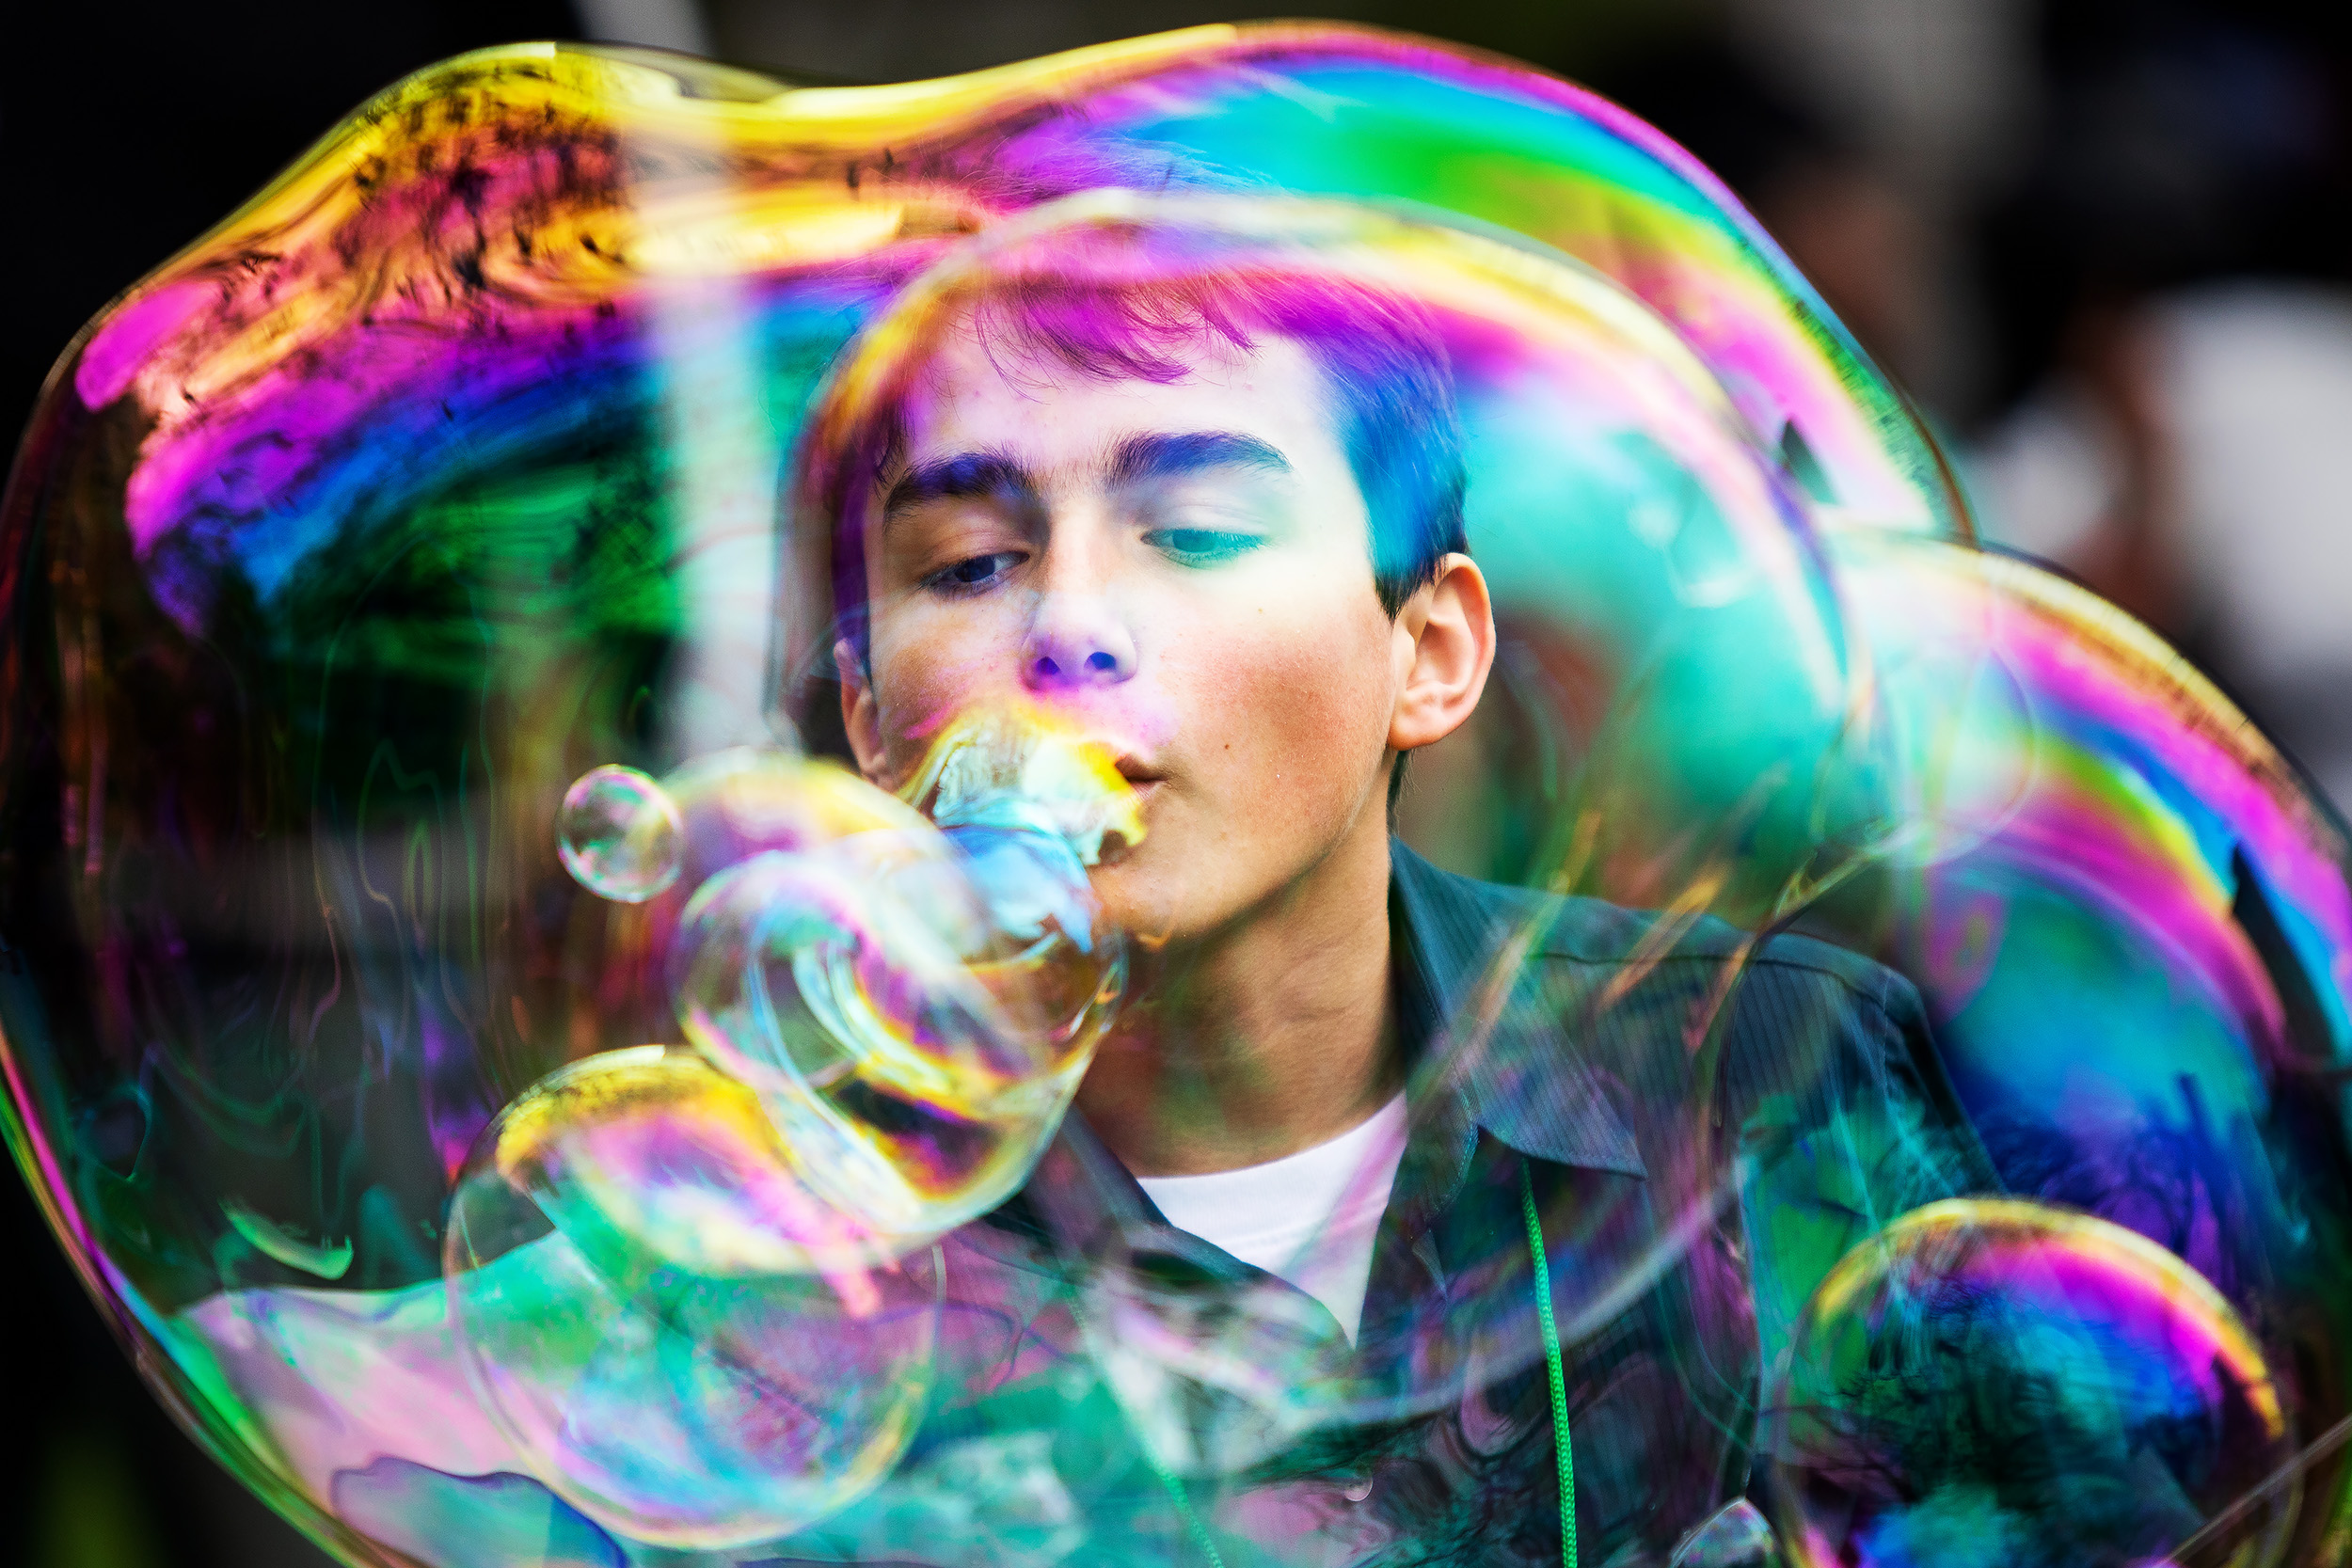 A young boy blows bubbles within bubbles for entertainment during the kickoff of Senator Cory Booker, a Democrat from New Jersey and 2020 presidential candidate, 'Justice for All' campaign tour in Newark, New Jersey